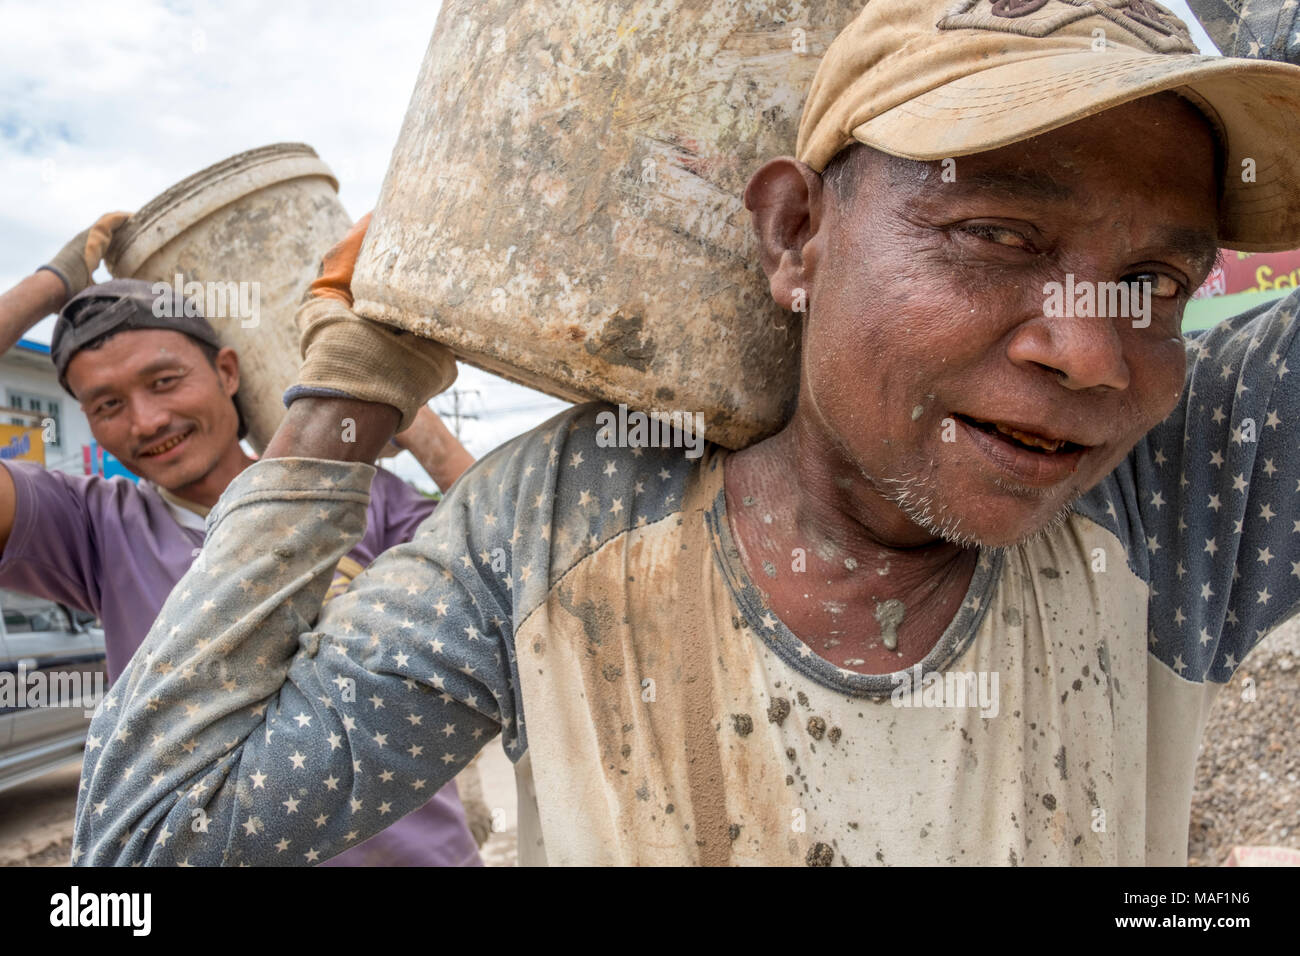 Construction workers on a building site. Lashio, Shan State, Myanmar - Stock Image